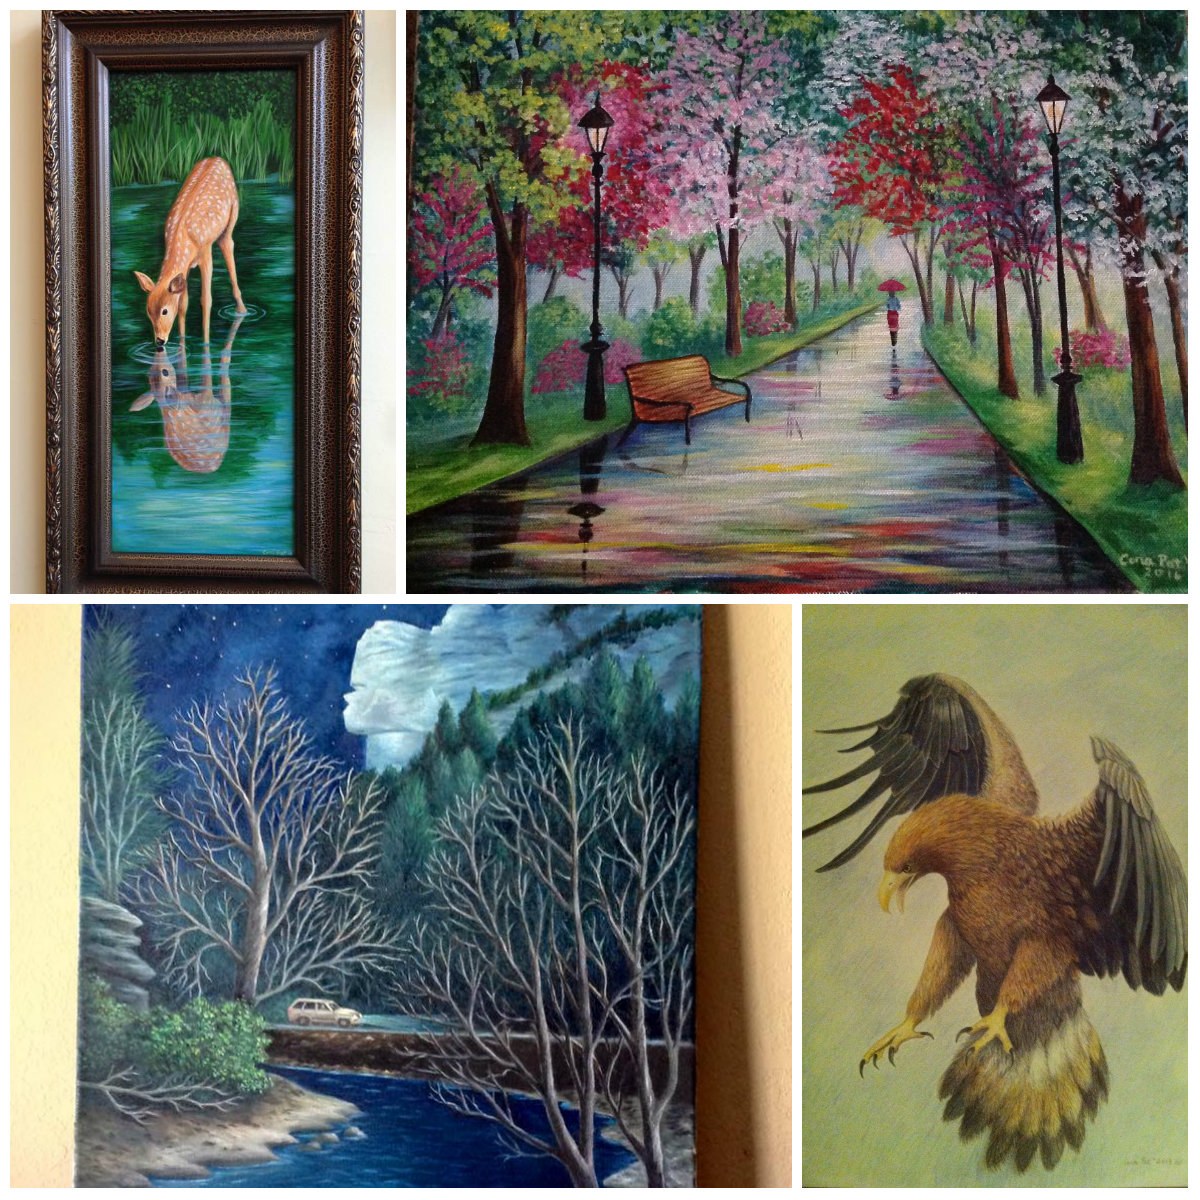 The Art of Cora Pat  Cora Pat Howard studied art at Lincoln Memorial University and Southeast Community and Technical College. She is a Freelance artist and instructor come see and purchase her paintings at the Cumberland Gap Artists' Co-Op in Cumberland Gap, TN.